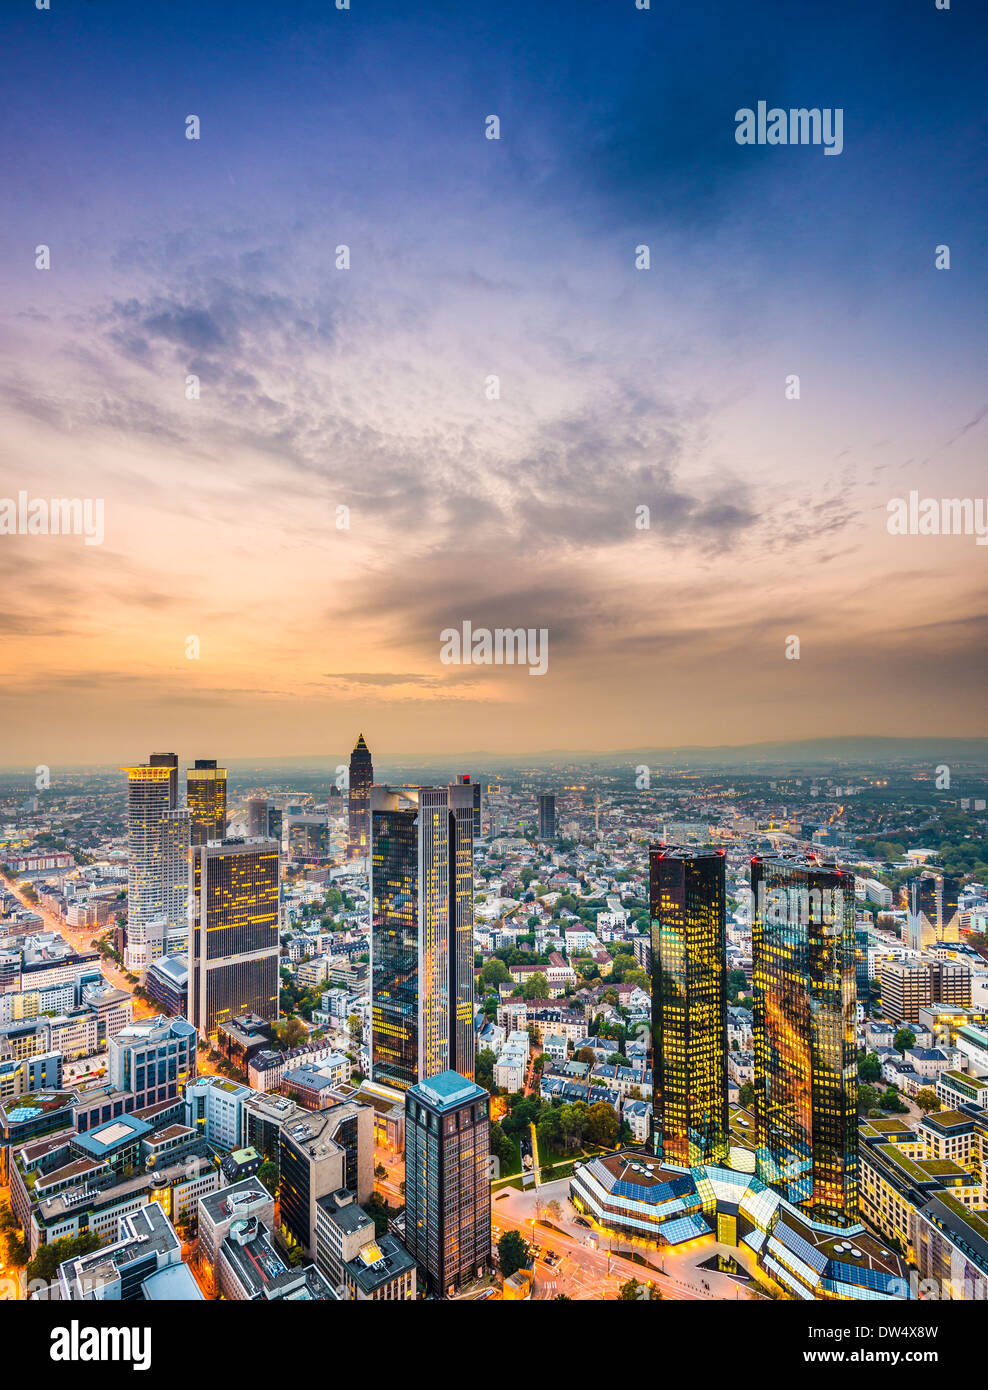 Frankfurt, Germany city skyline. - Stock Image